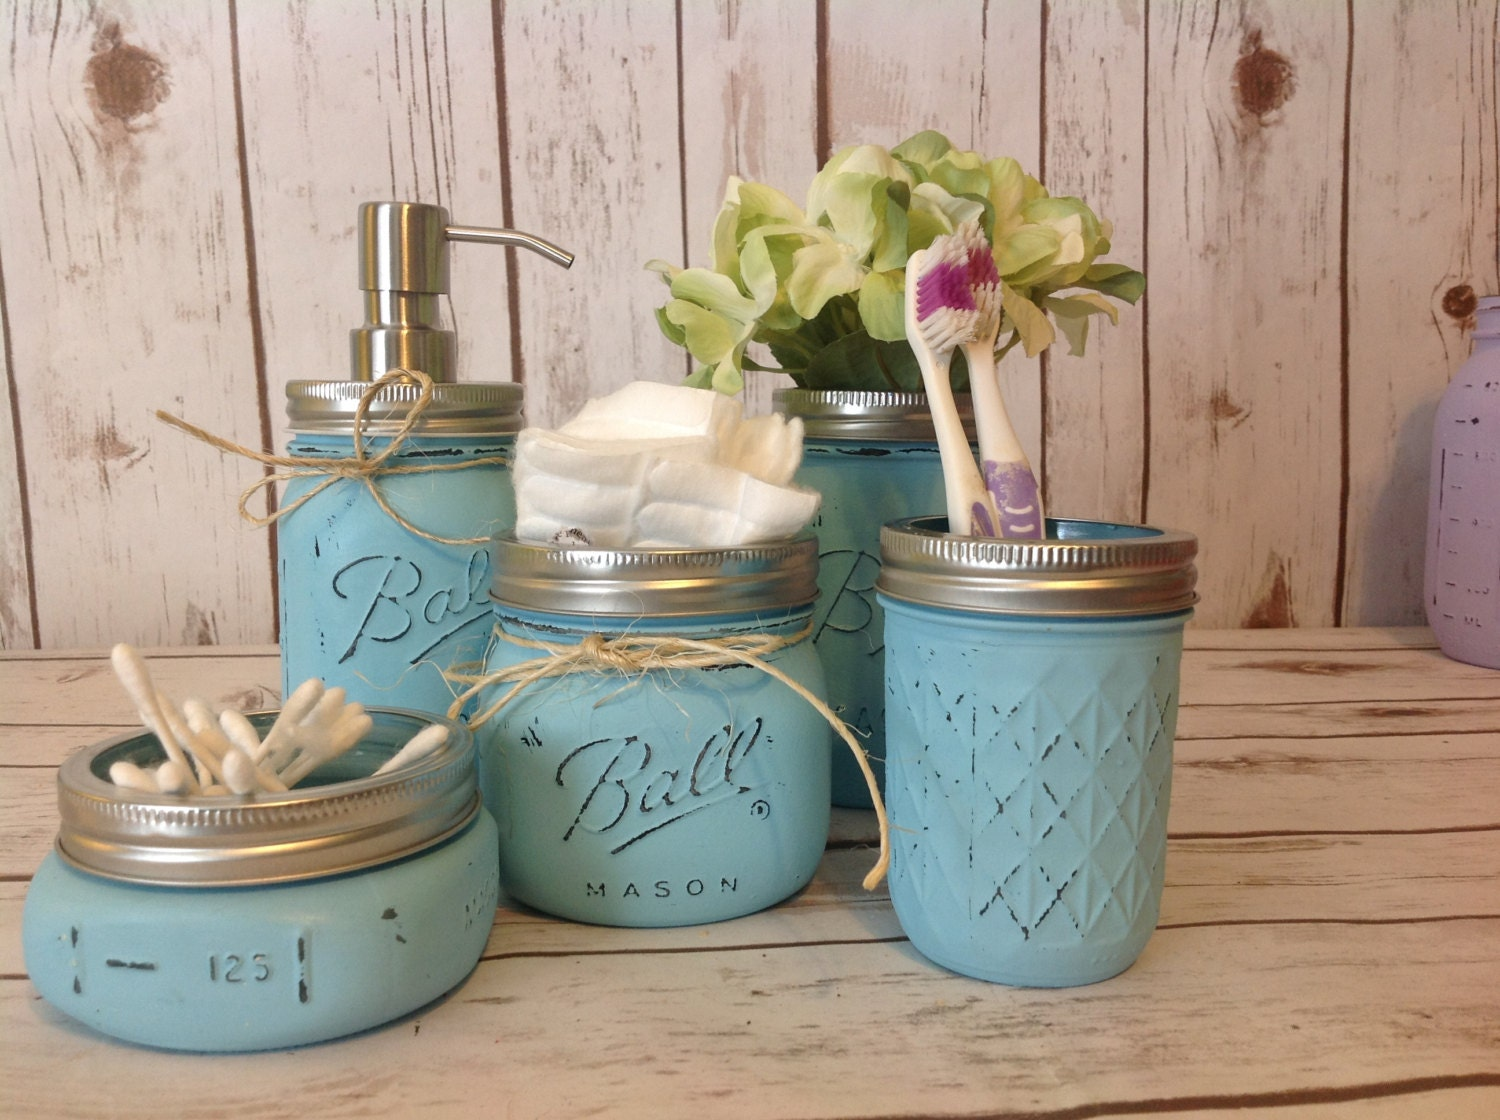 Mason jar bathroom kit bathroom farmhouse decor by for Bathroom decor mason jars